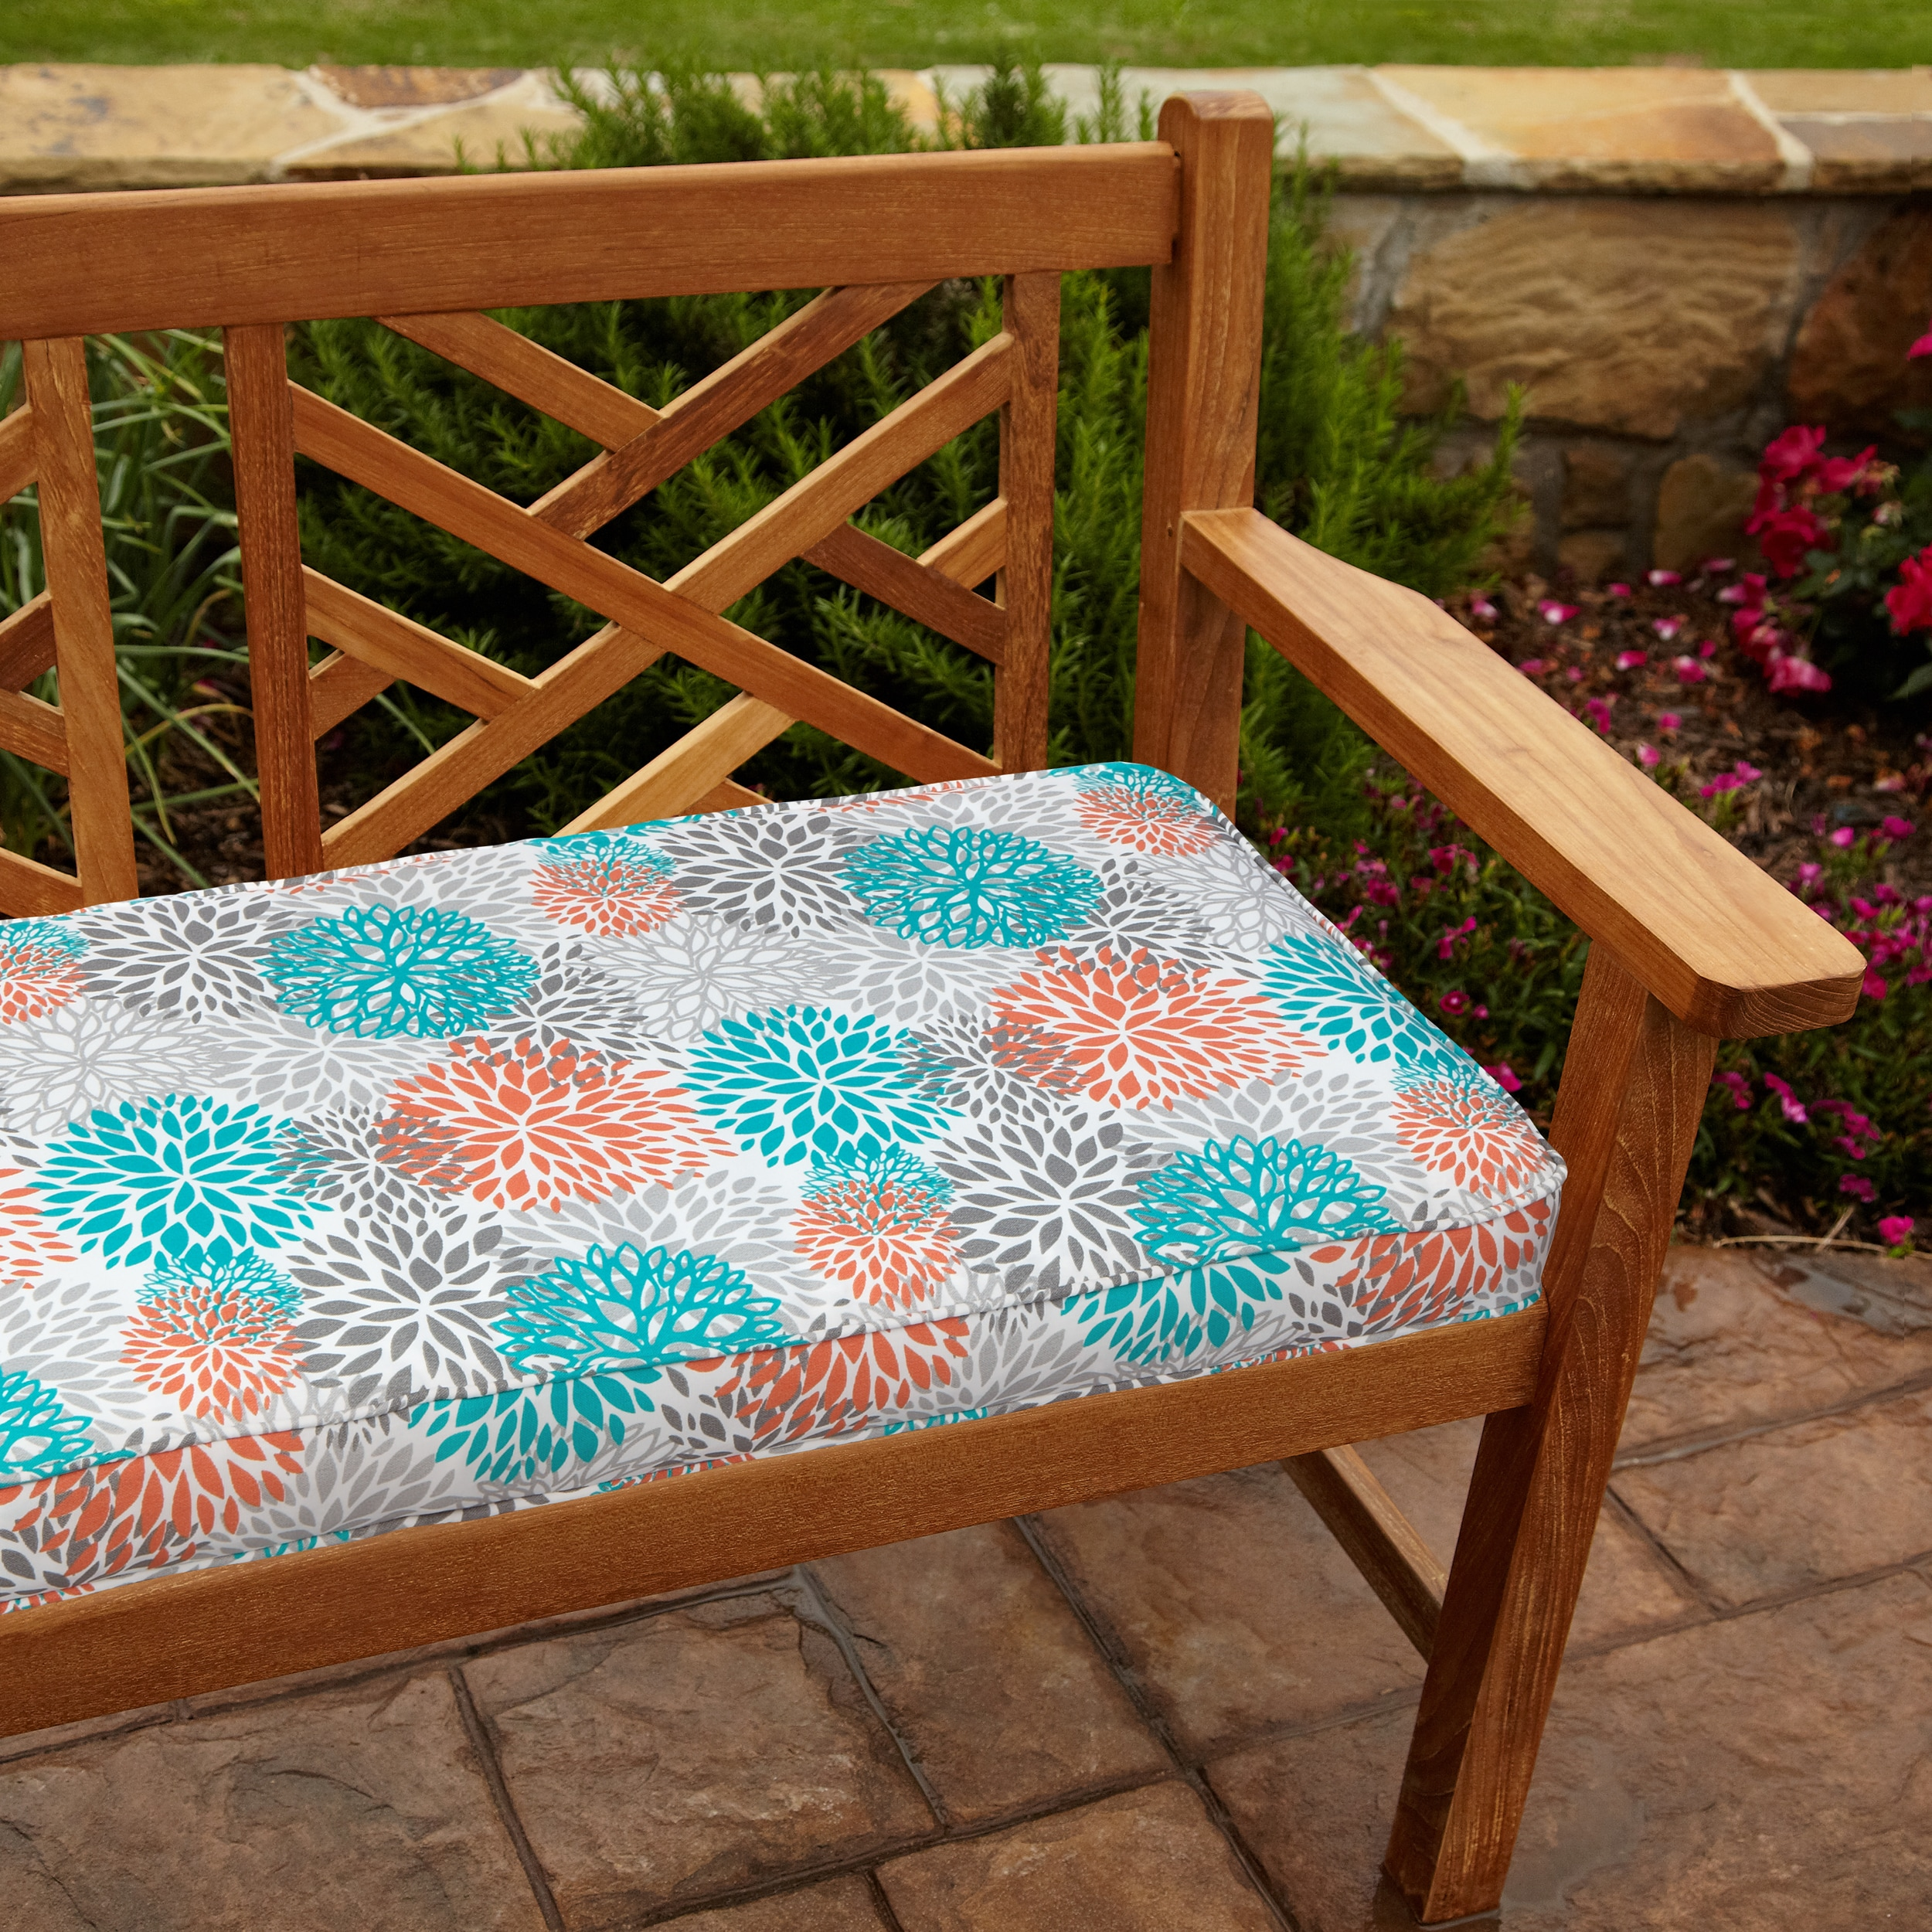 Tropic Bloom 48-inch Outdoor Bench Cushion at Sears.com